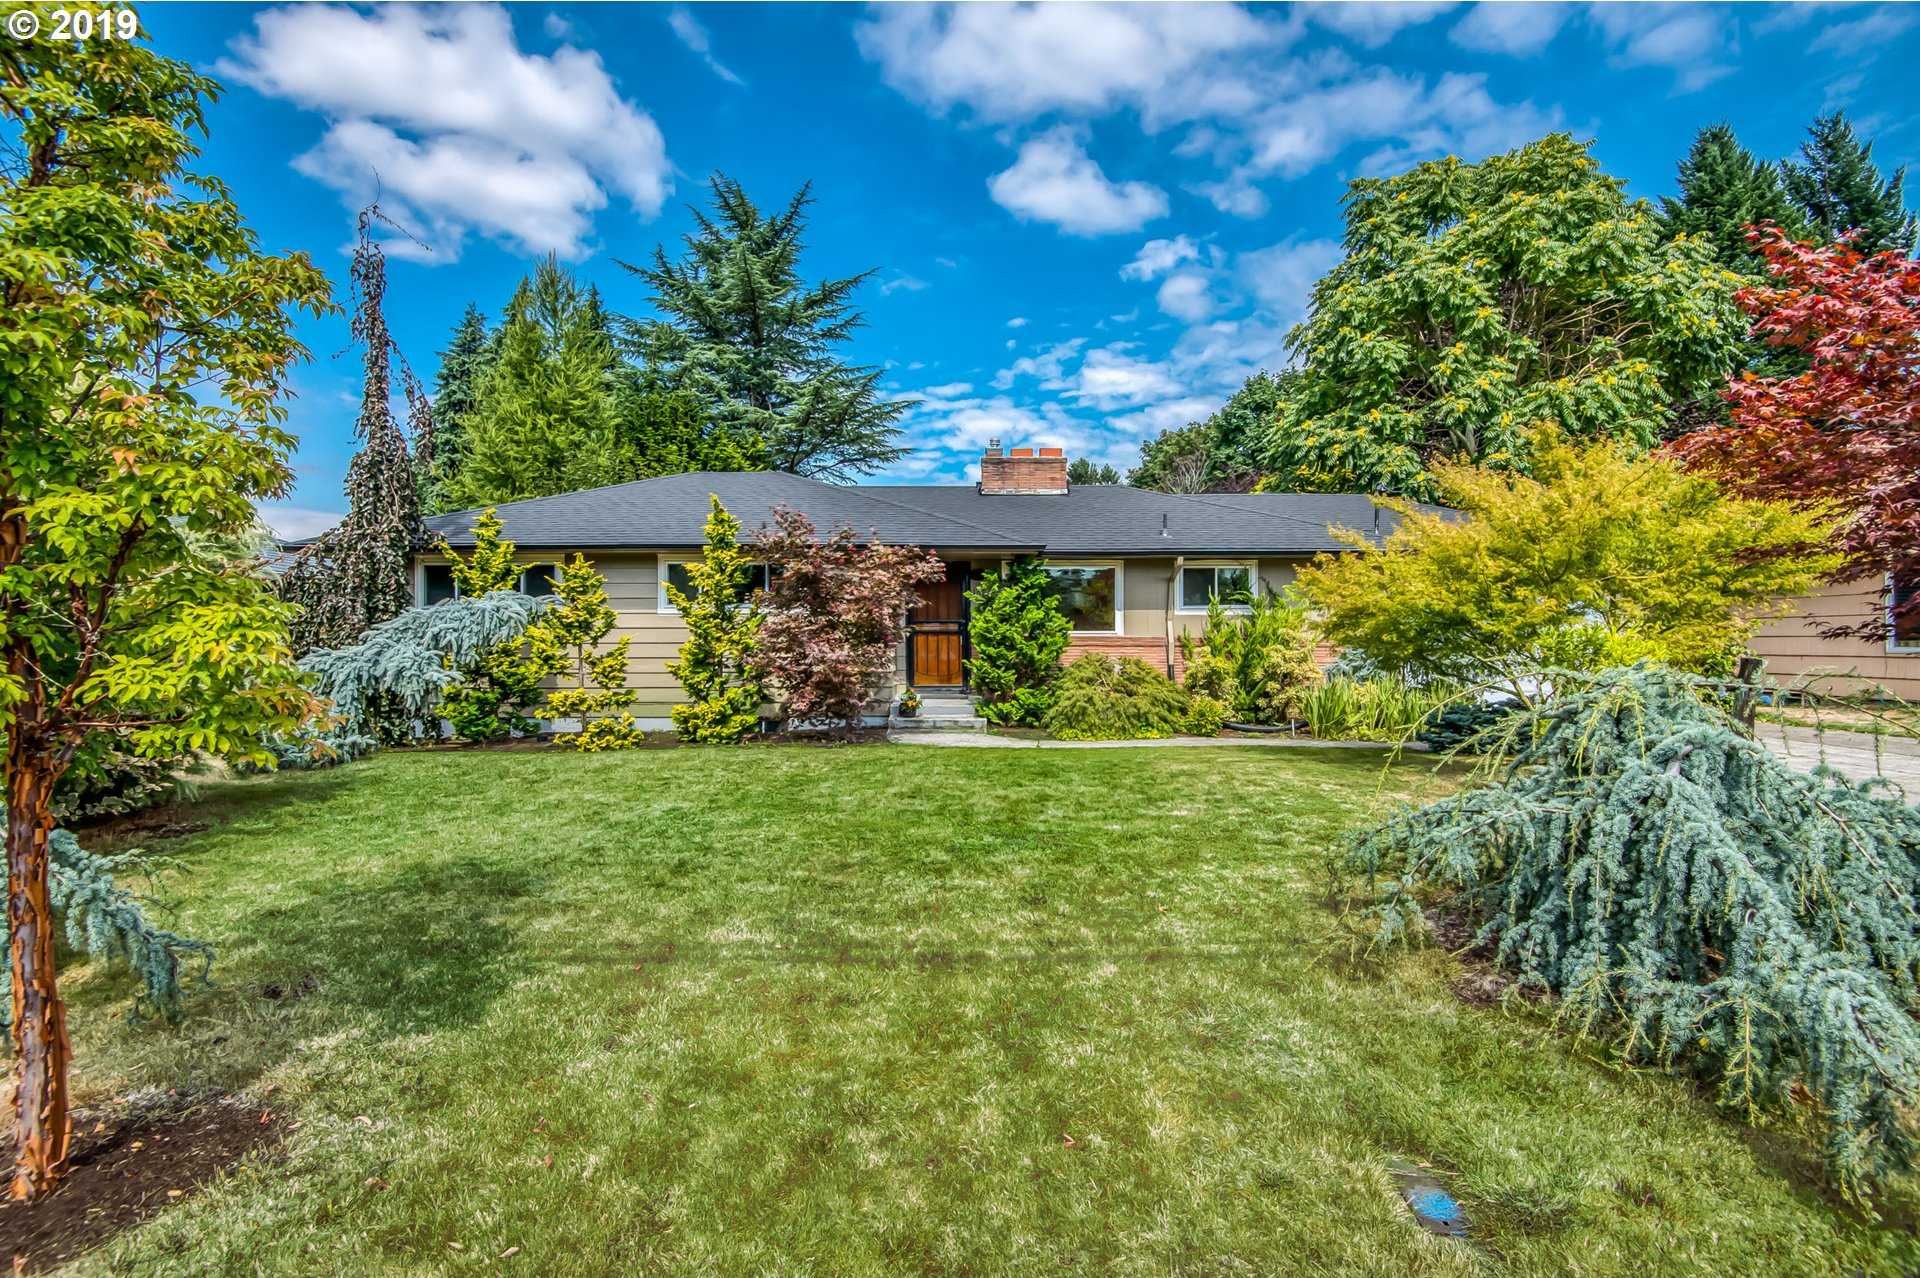 $415,000 - 3Br/2Ba -  for Sale in Parkrose Heights, Portland